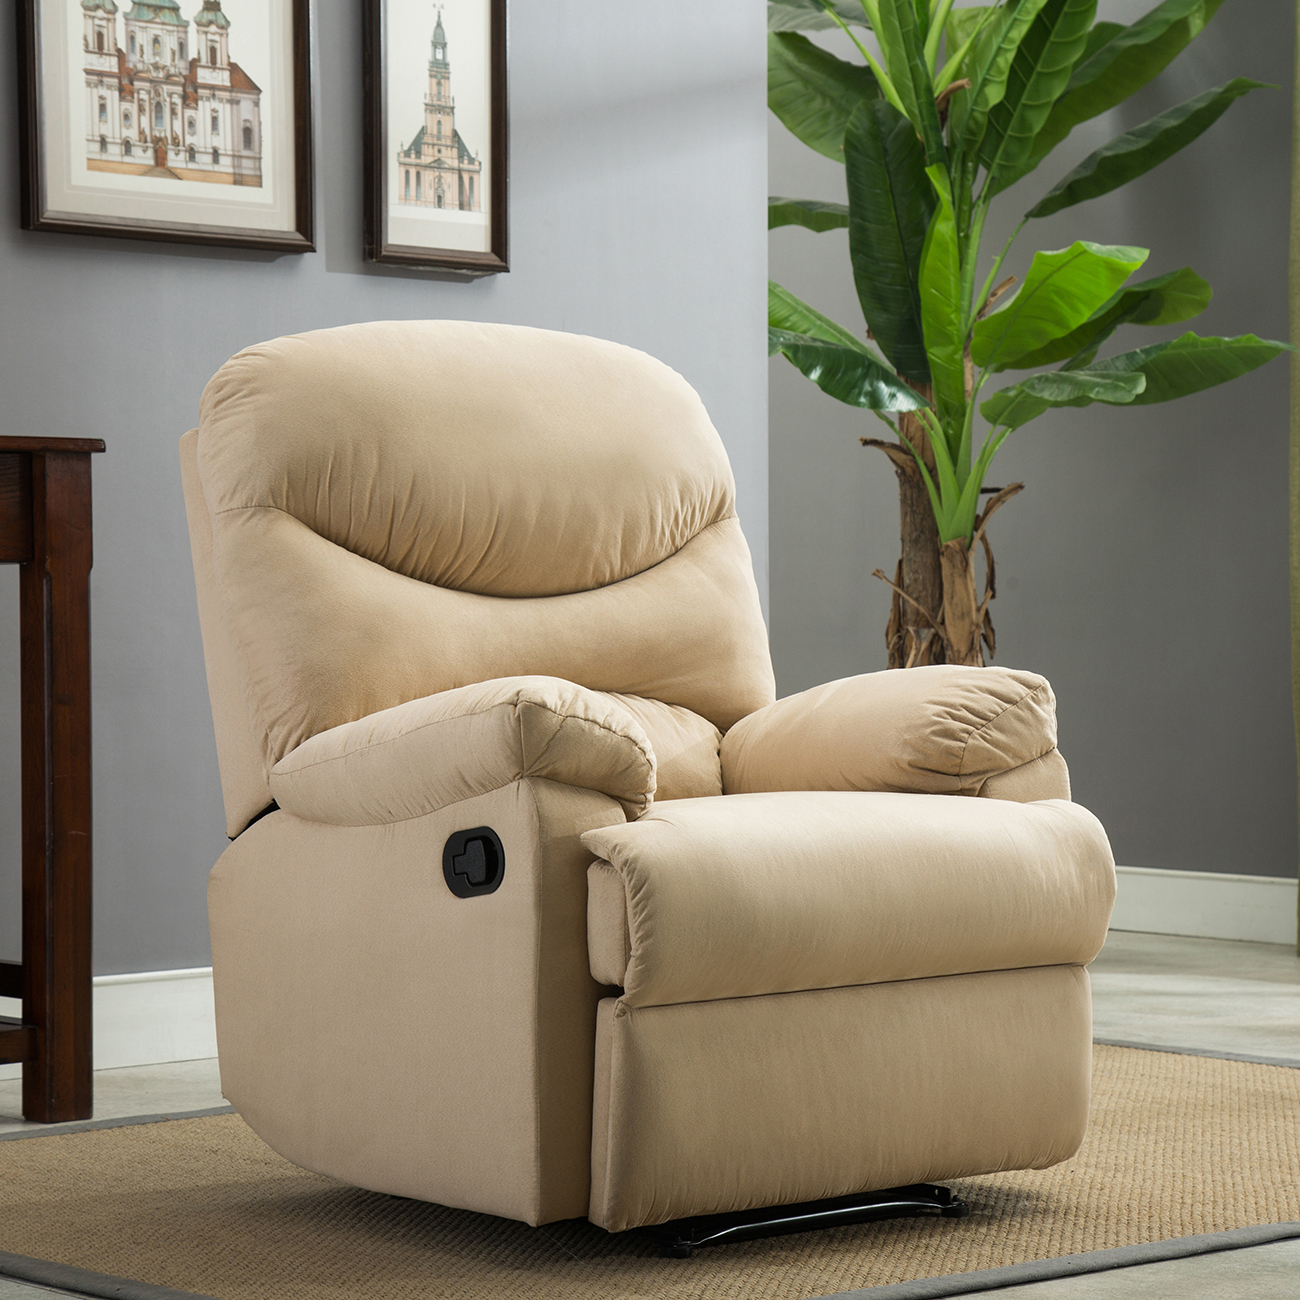 Marvelous Details About Plush Recliner Livingroom Reclining Chair Man Cave Tv Living Room Beige Brown Machost Co Dining Chair Design Ideas Machostcouk